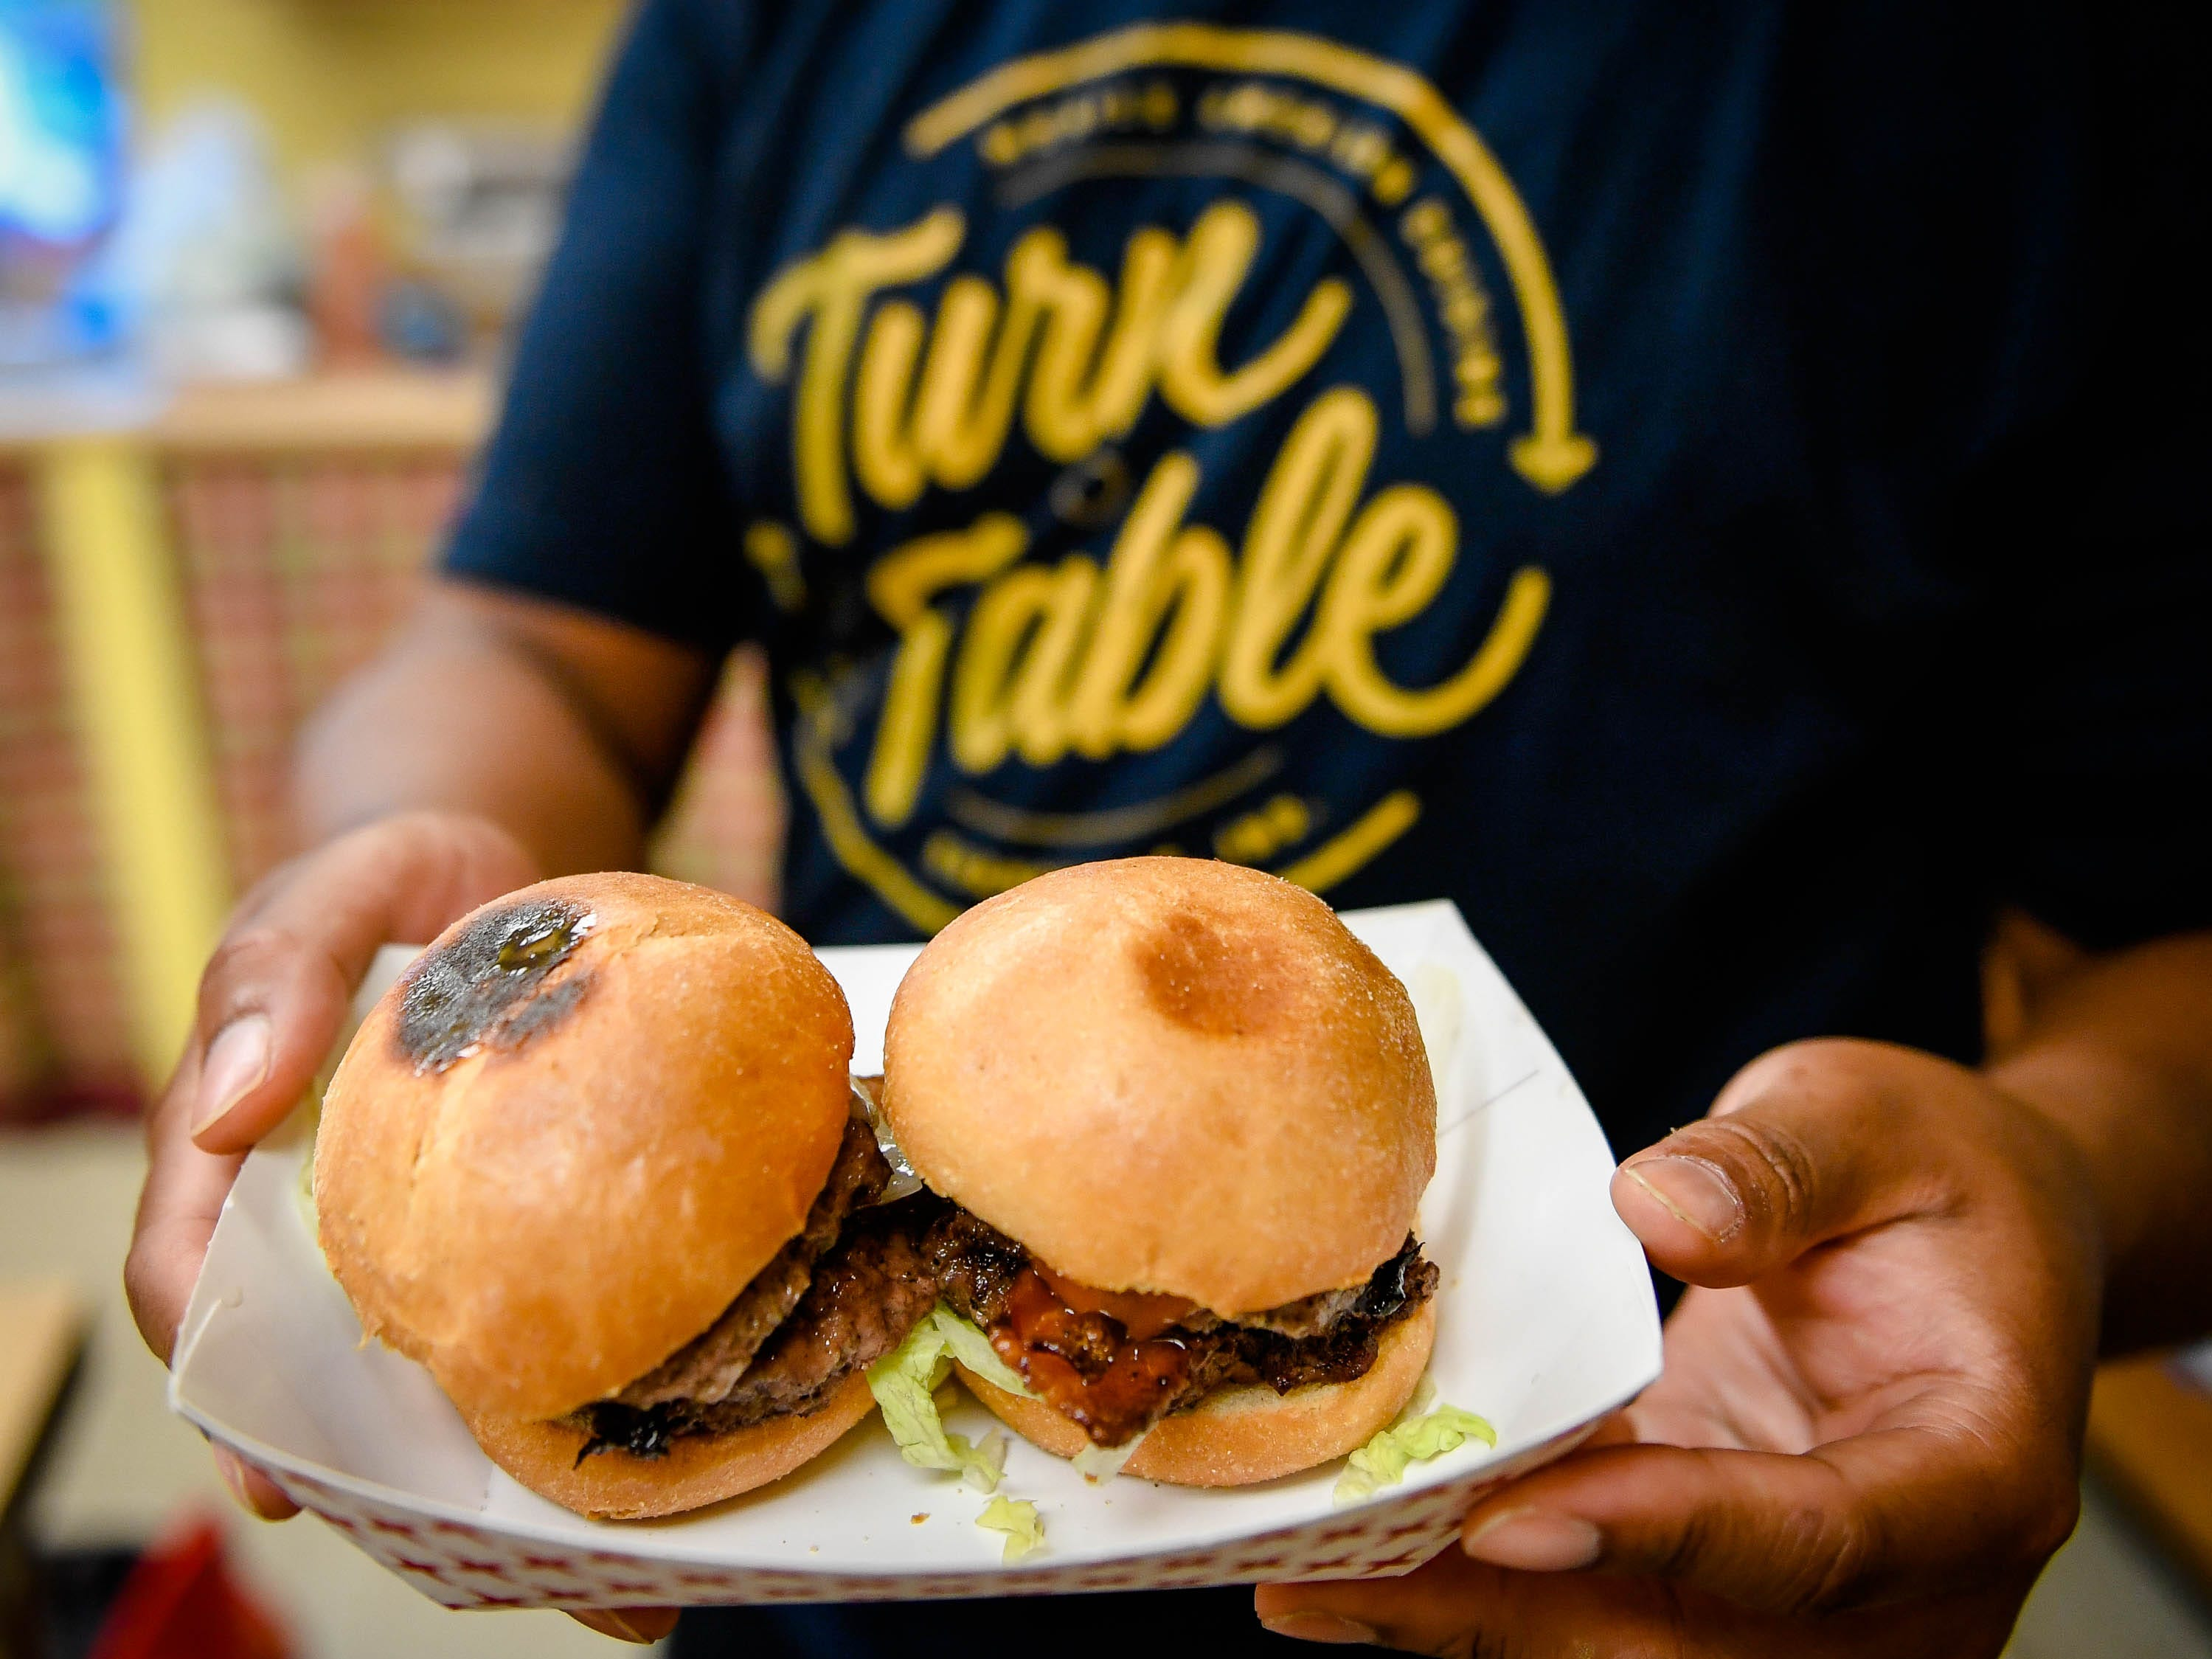 Double patty cheese sliders with Swiss and bacon served up by the Turn Table Mobile Cuisine at Patch Work Central during the Haynie's Corner First Friday event in the downtown Arts District Friday, August 3, 2018.